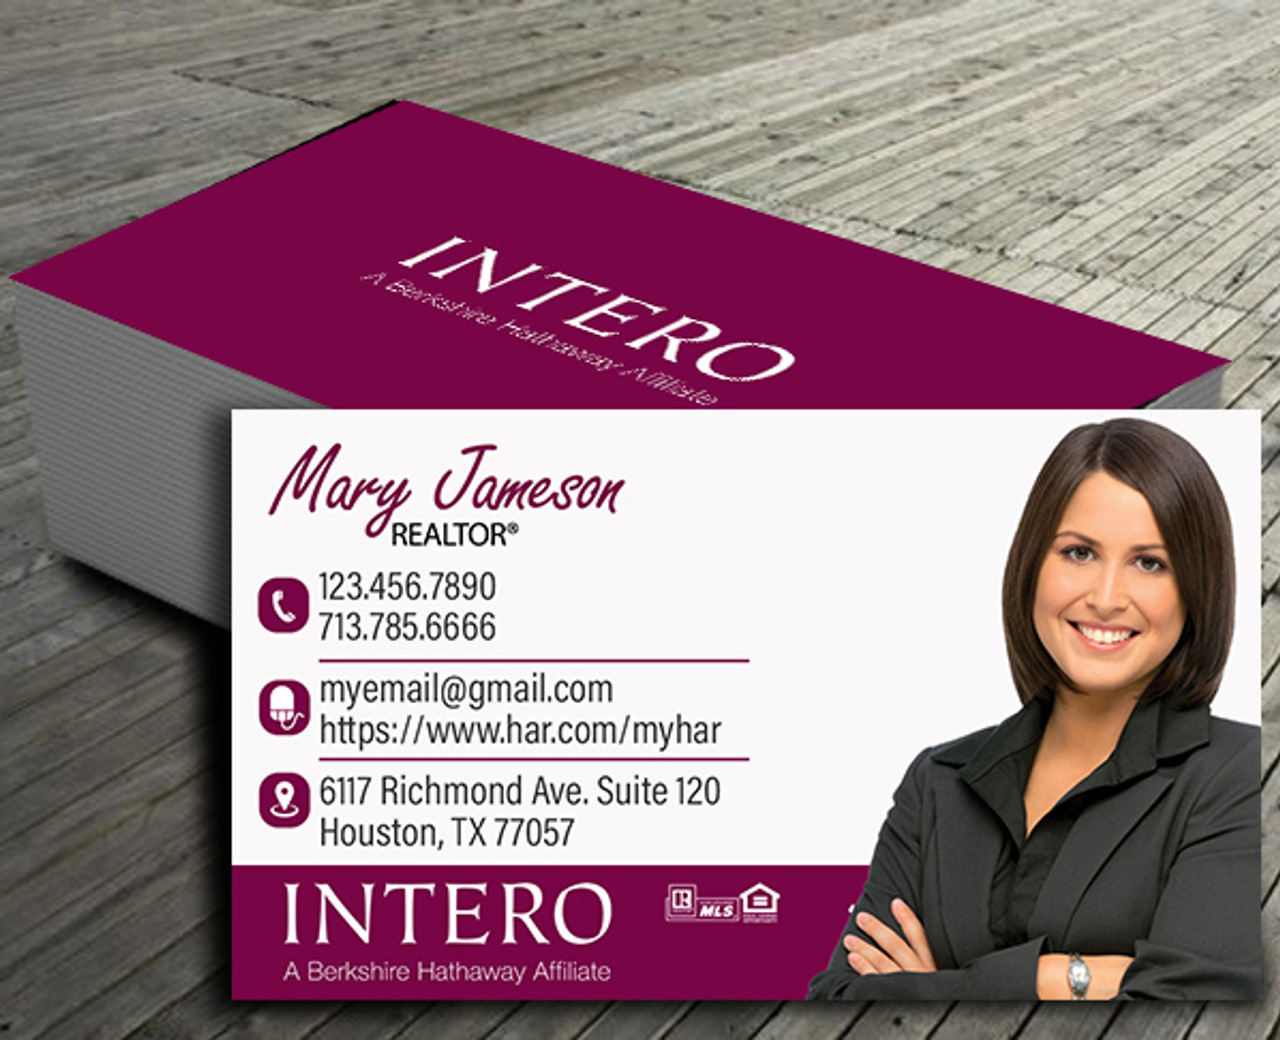 Intero Business Cards